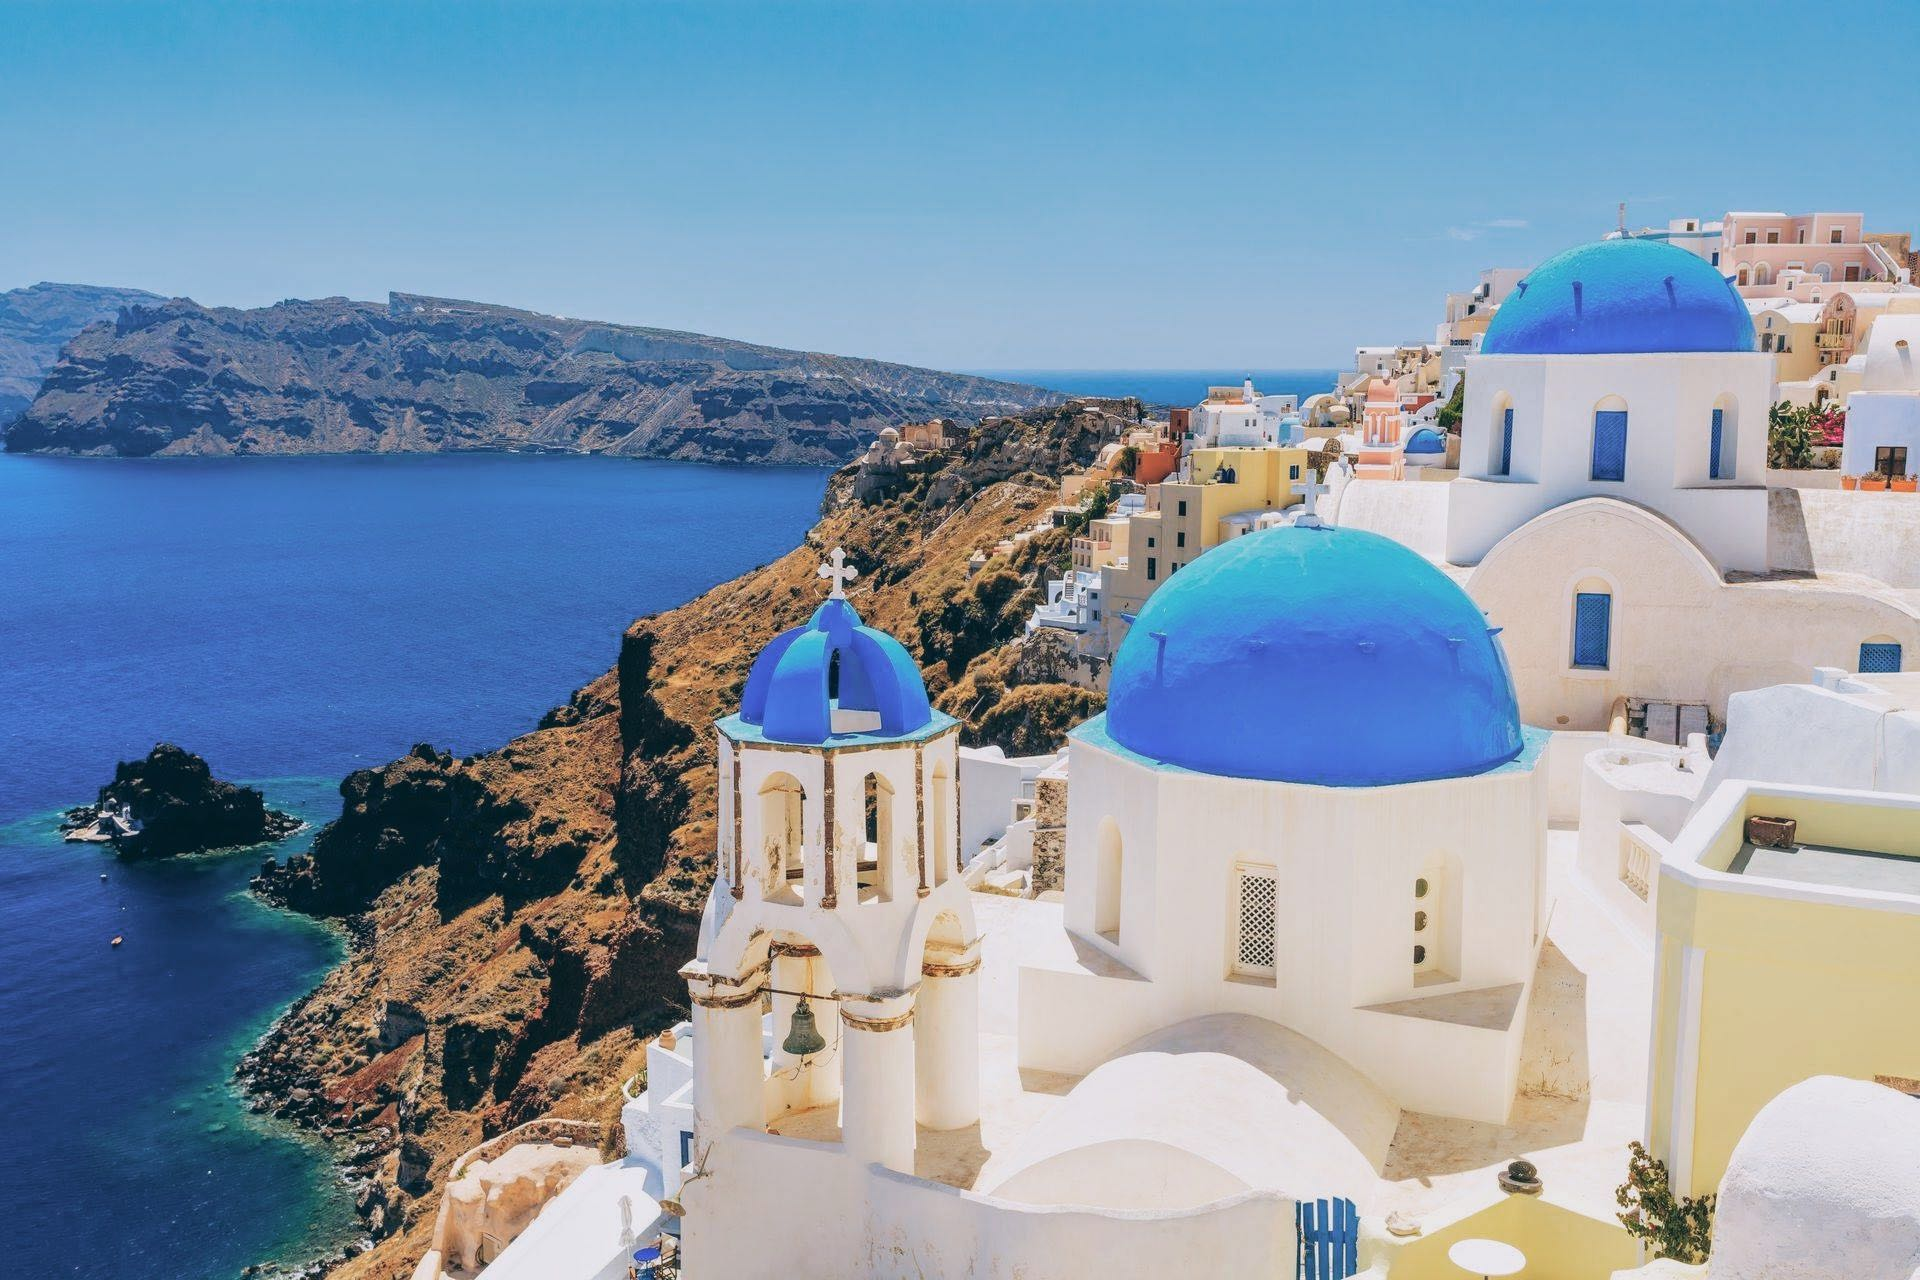 KT (4 hours): [Santorini] Santorini Panorama and Wine-Tasting